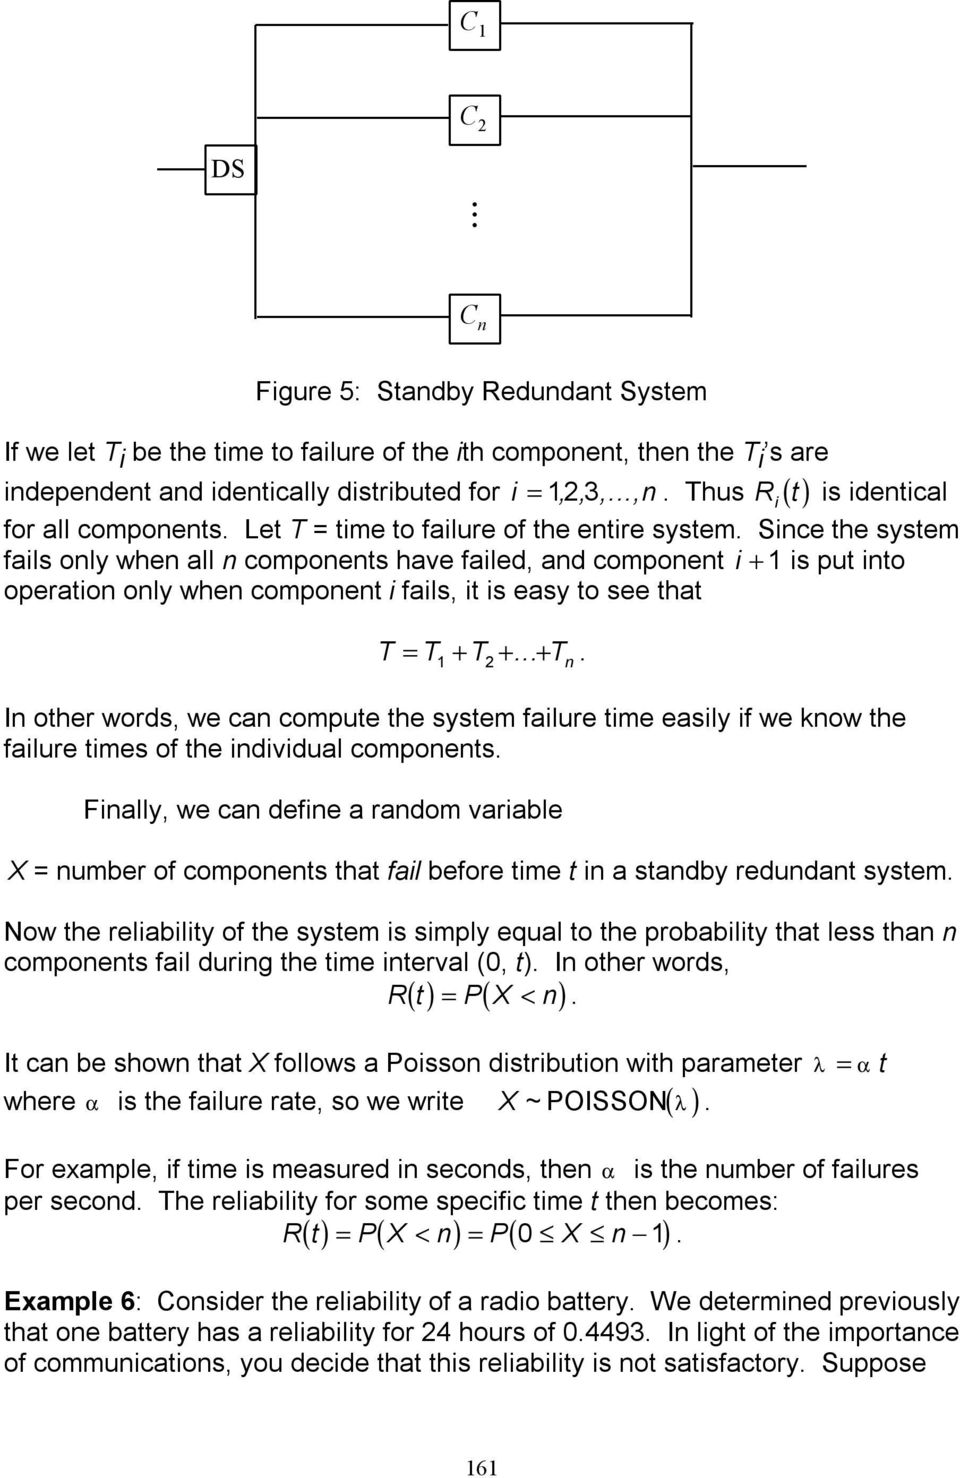 all components. Let T = time to failure of the entire system.